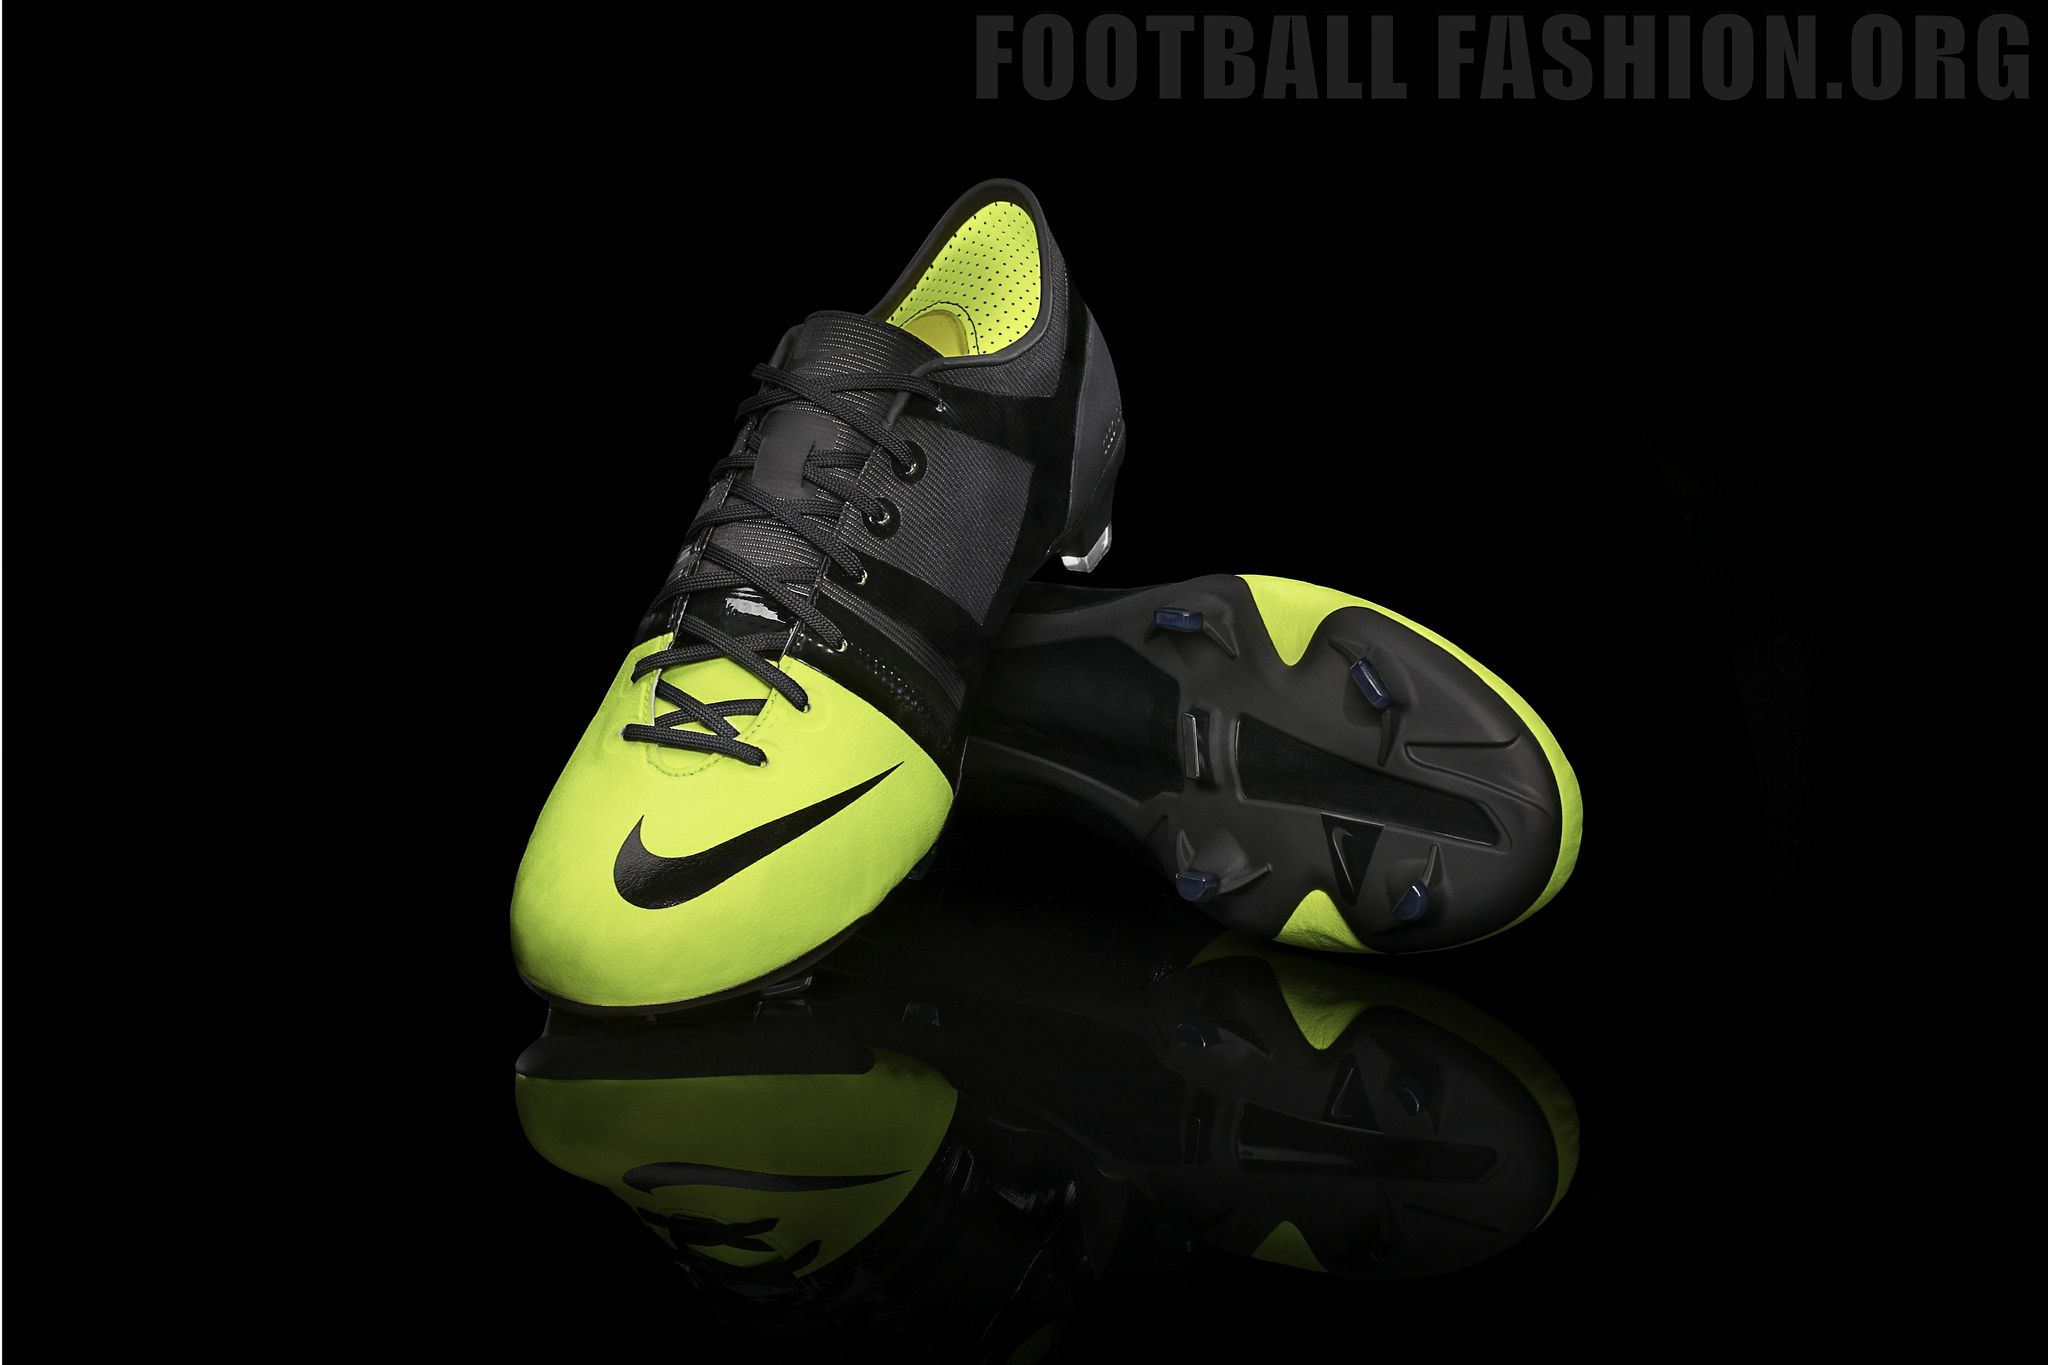 Nike GS Soccer Boots - As Worn by